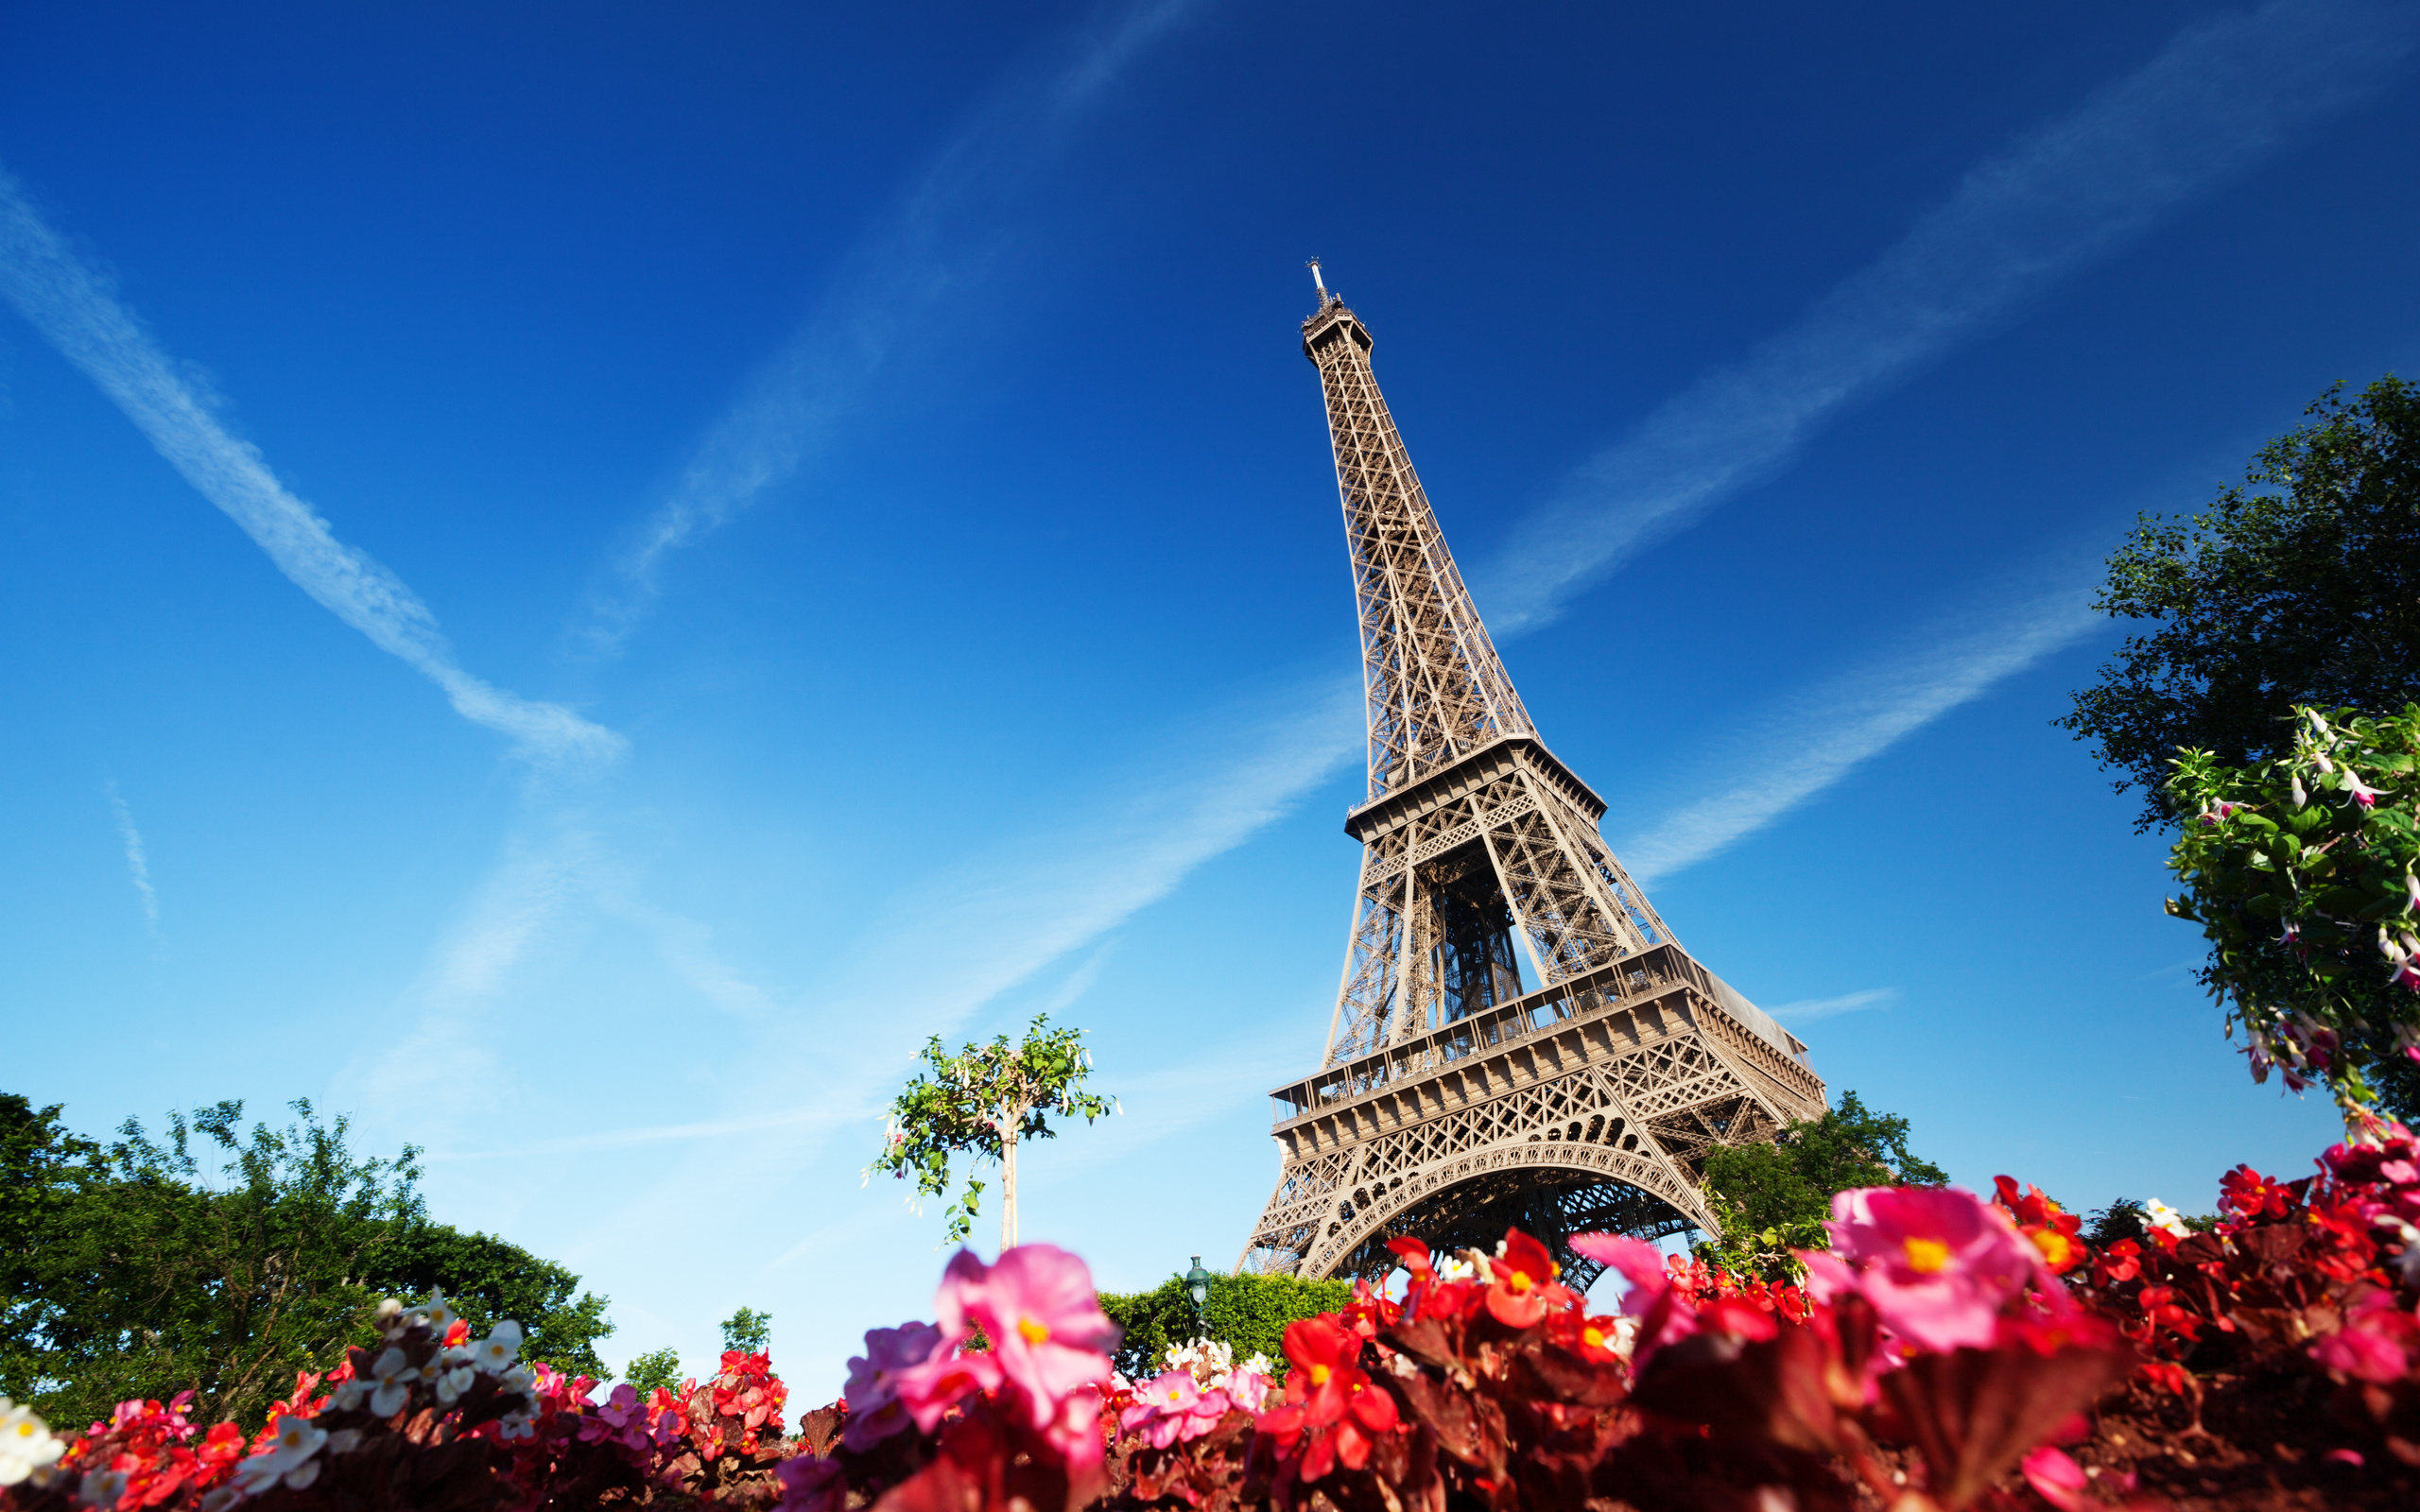 Eiffel Tower Hd Wallpaper Background Image 2560x1600 Id 330104